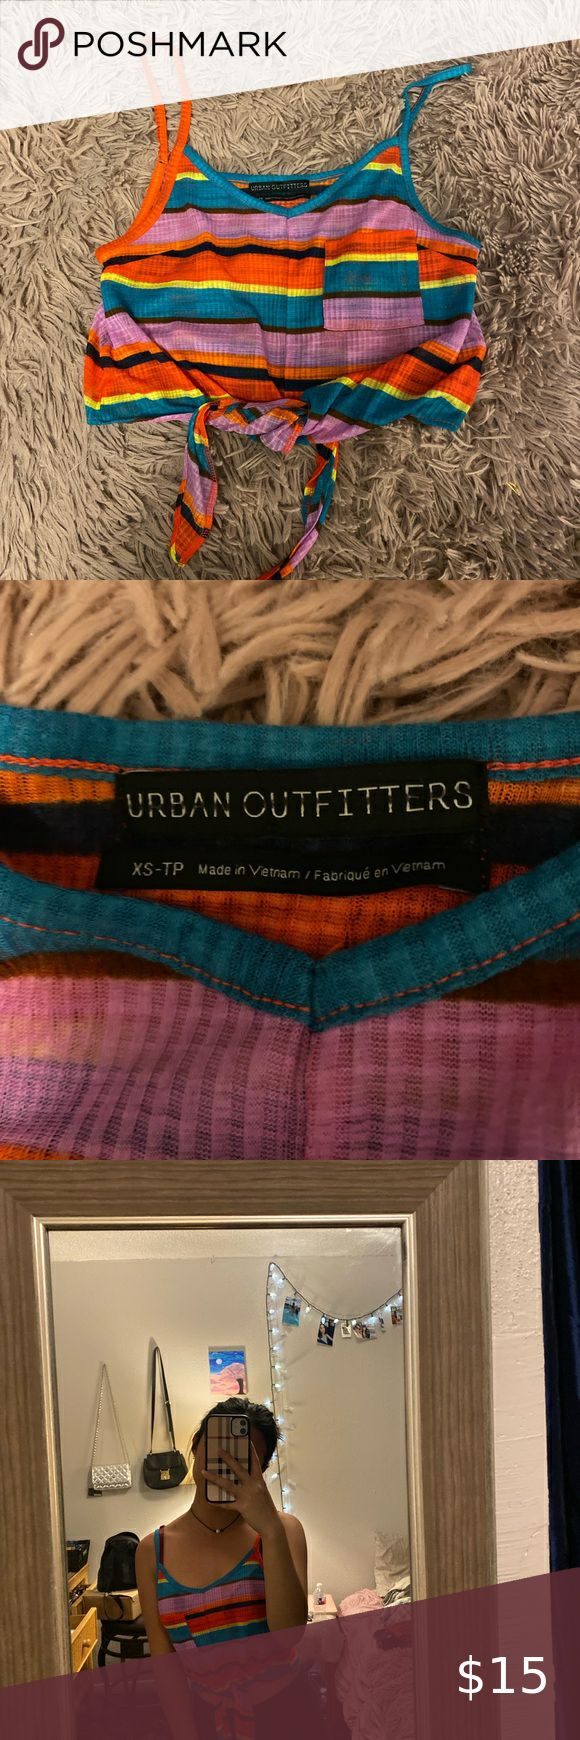 urban outfitters tank in 2020 Urban outfitters, Urban